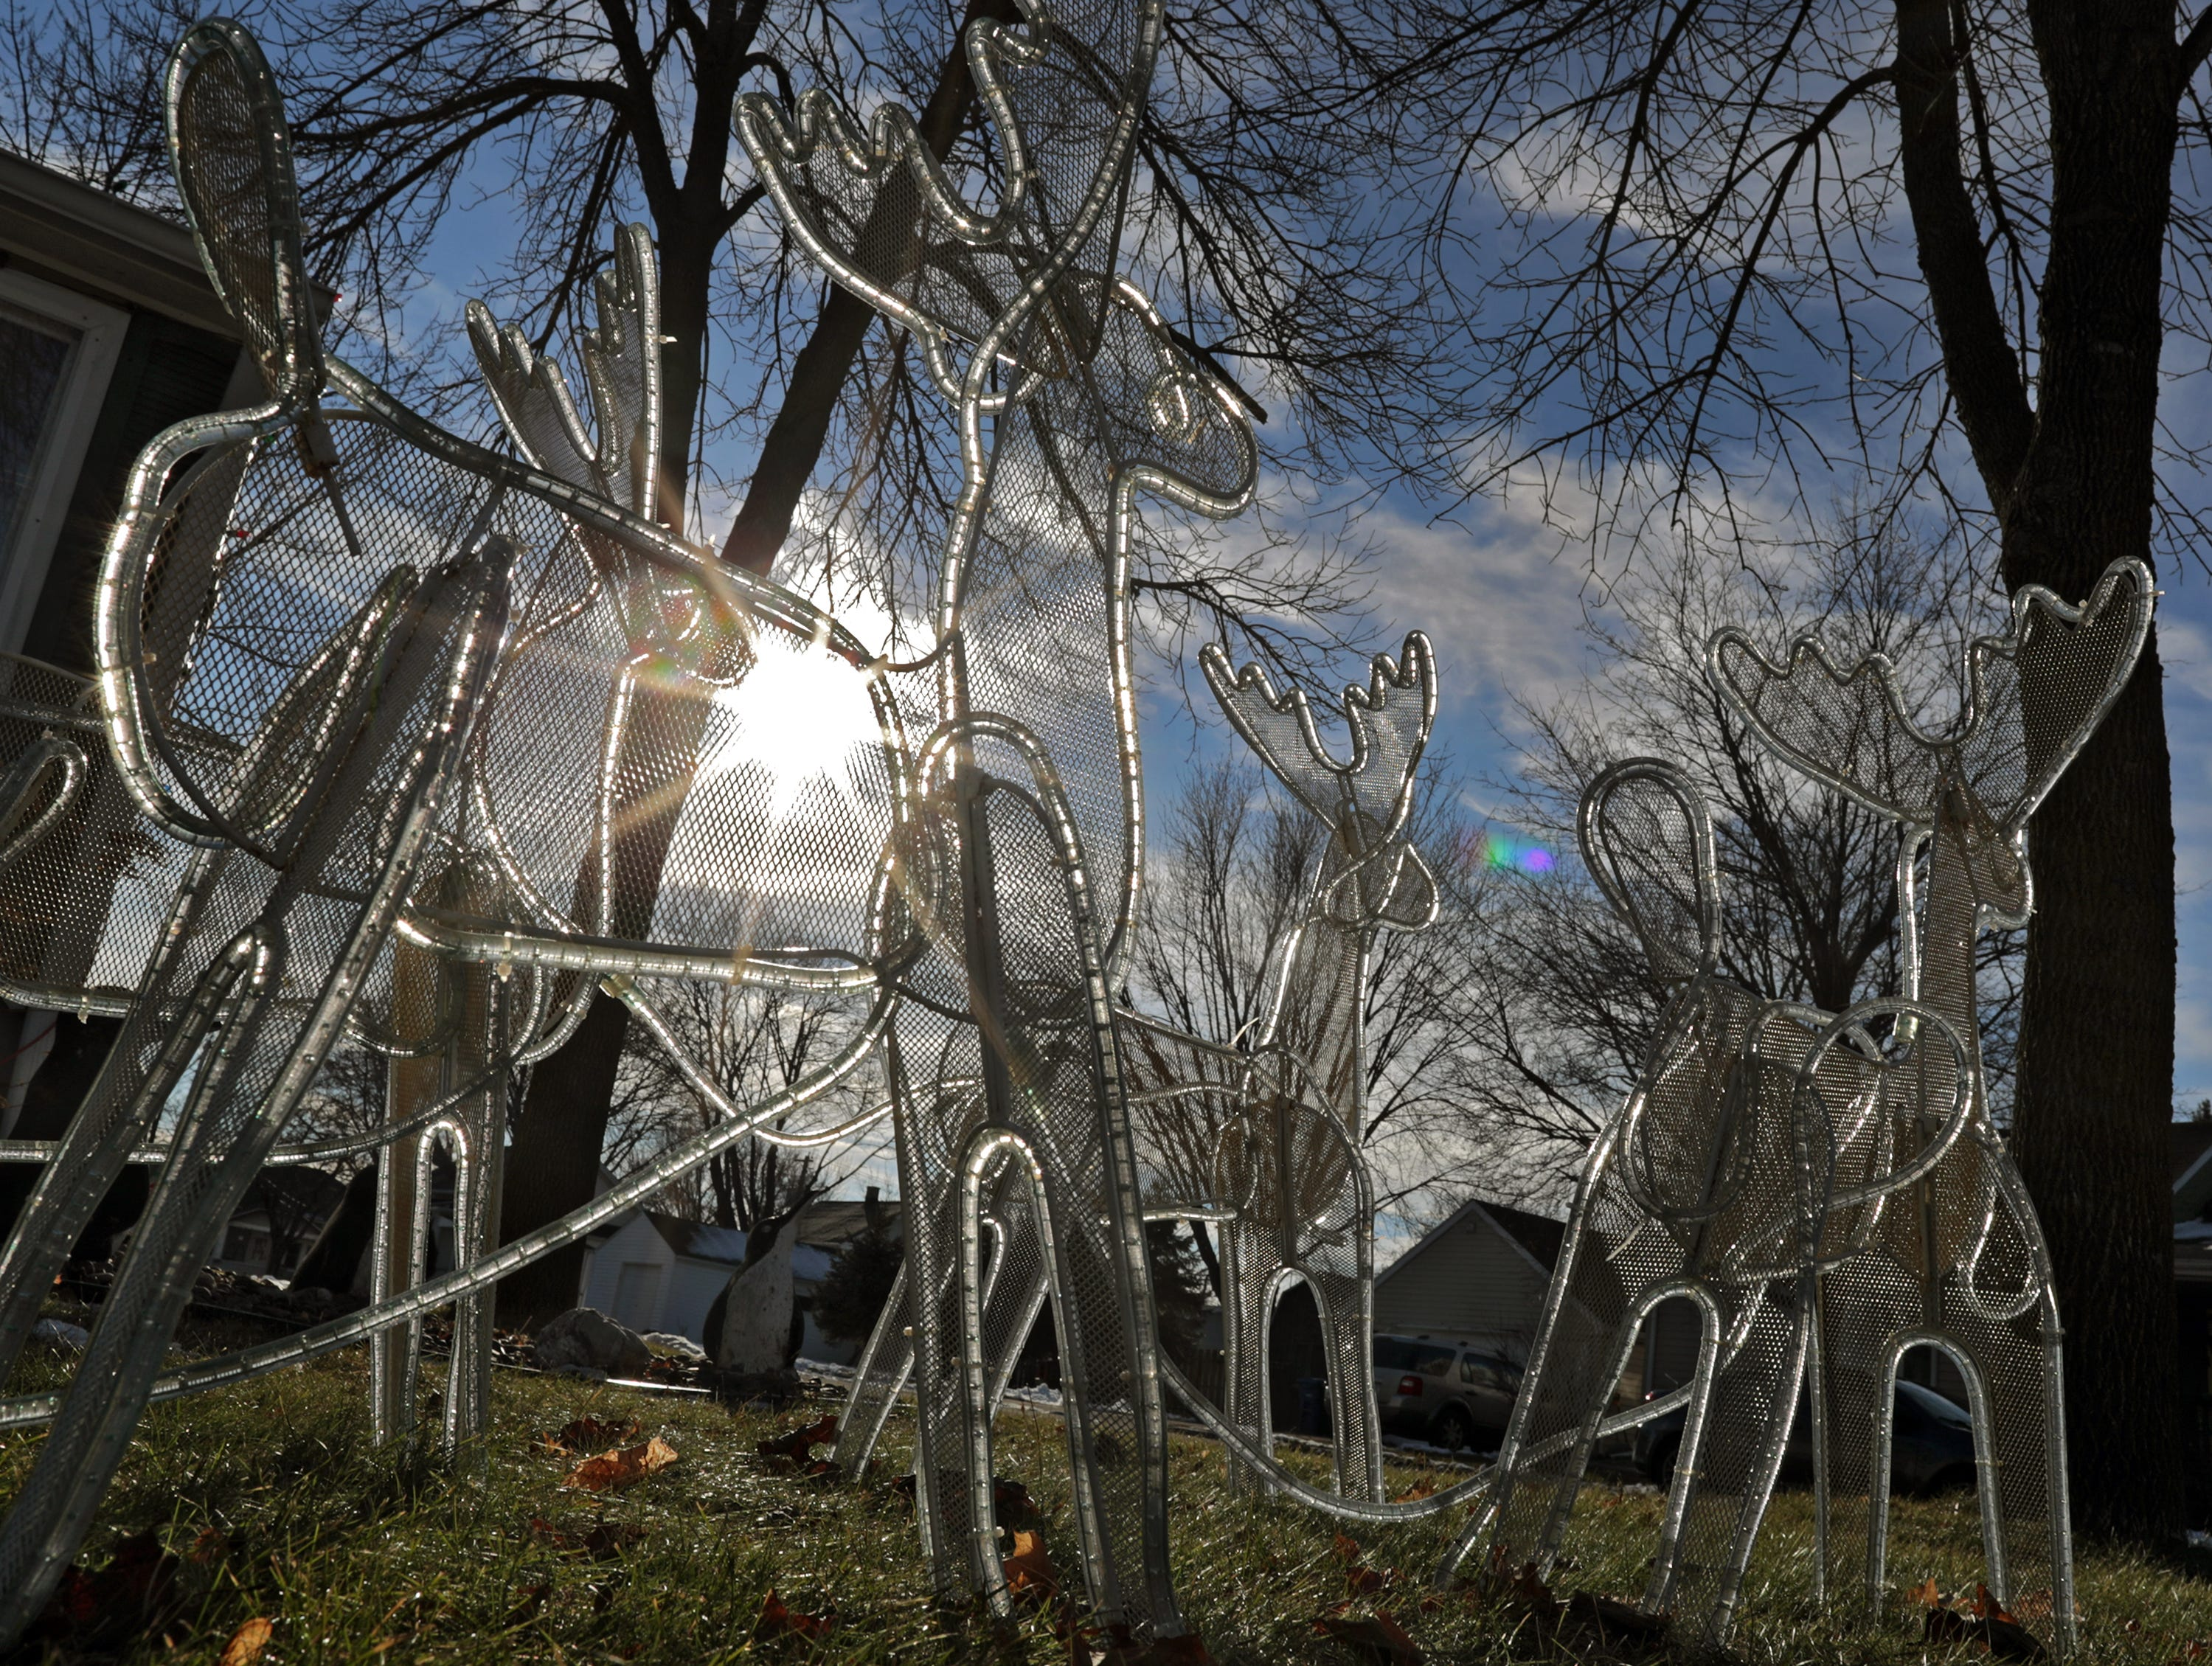 Hard sun shines through Christmas decrations on Lincoln Ave. on Tuesday, December 18, 2018, in Little Chute, Wis.Wm. Glasheen/USA TODAY NETWORK-Wisconsin.